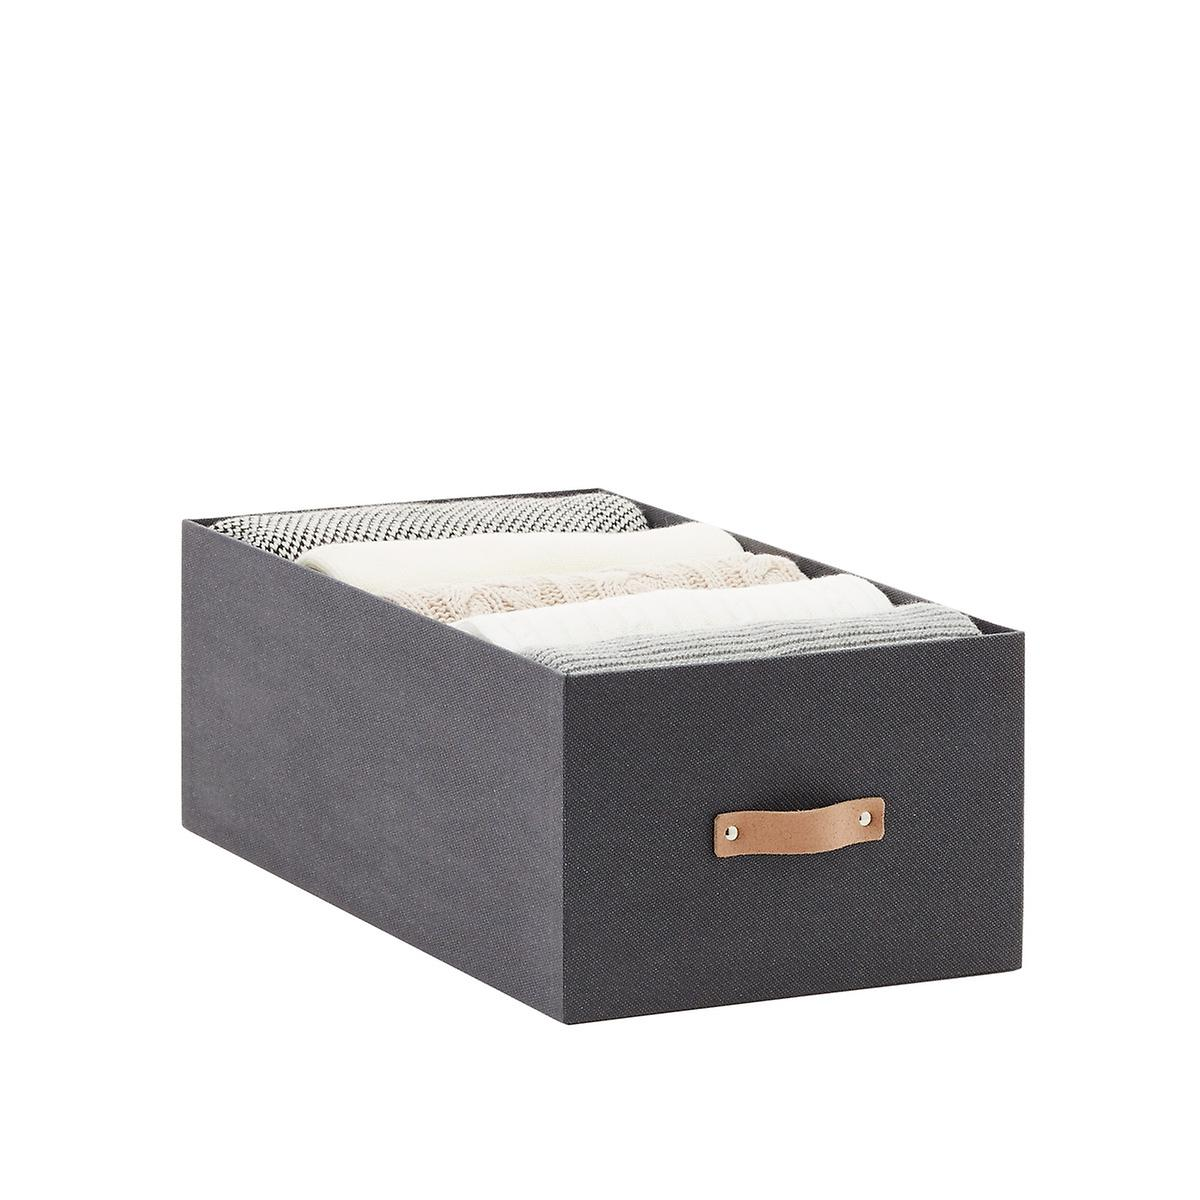 Charcoal Avera Storage Bins